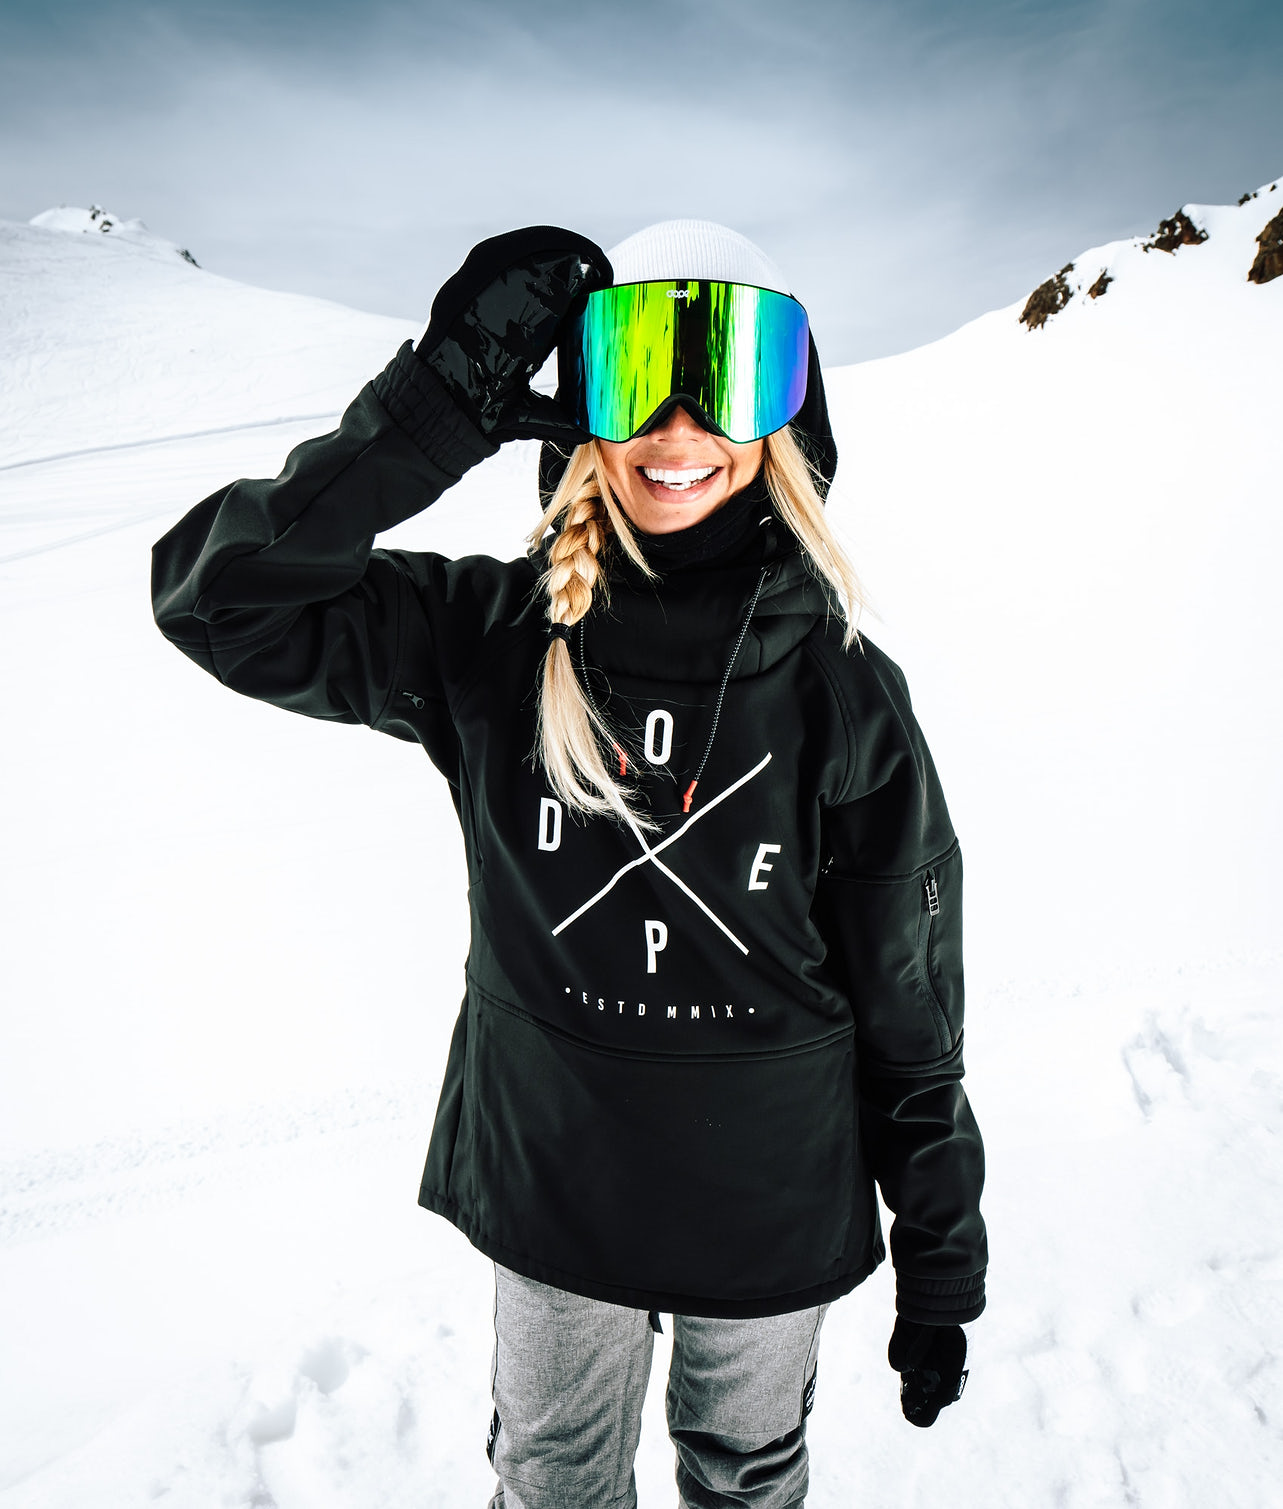 Buy Rambler MTE W Snowboard Jacket from Dope at Ridestore.com - Always free shipping, free returns and 30 days money back guarantee